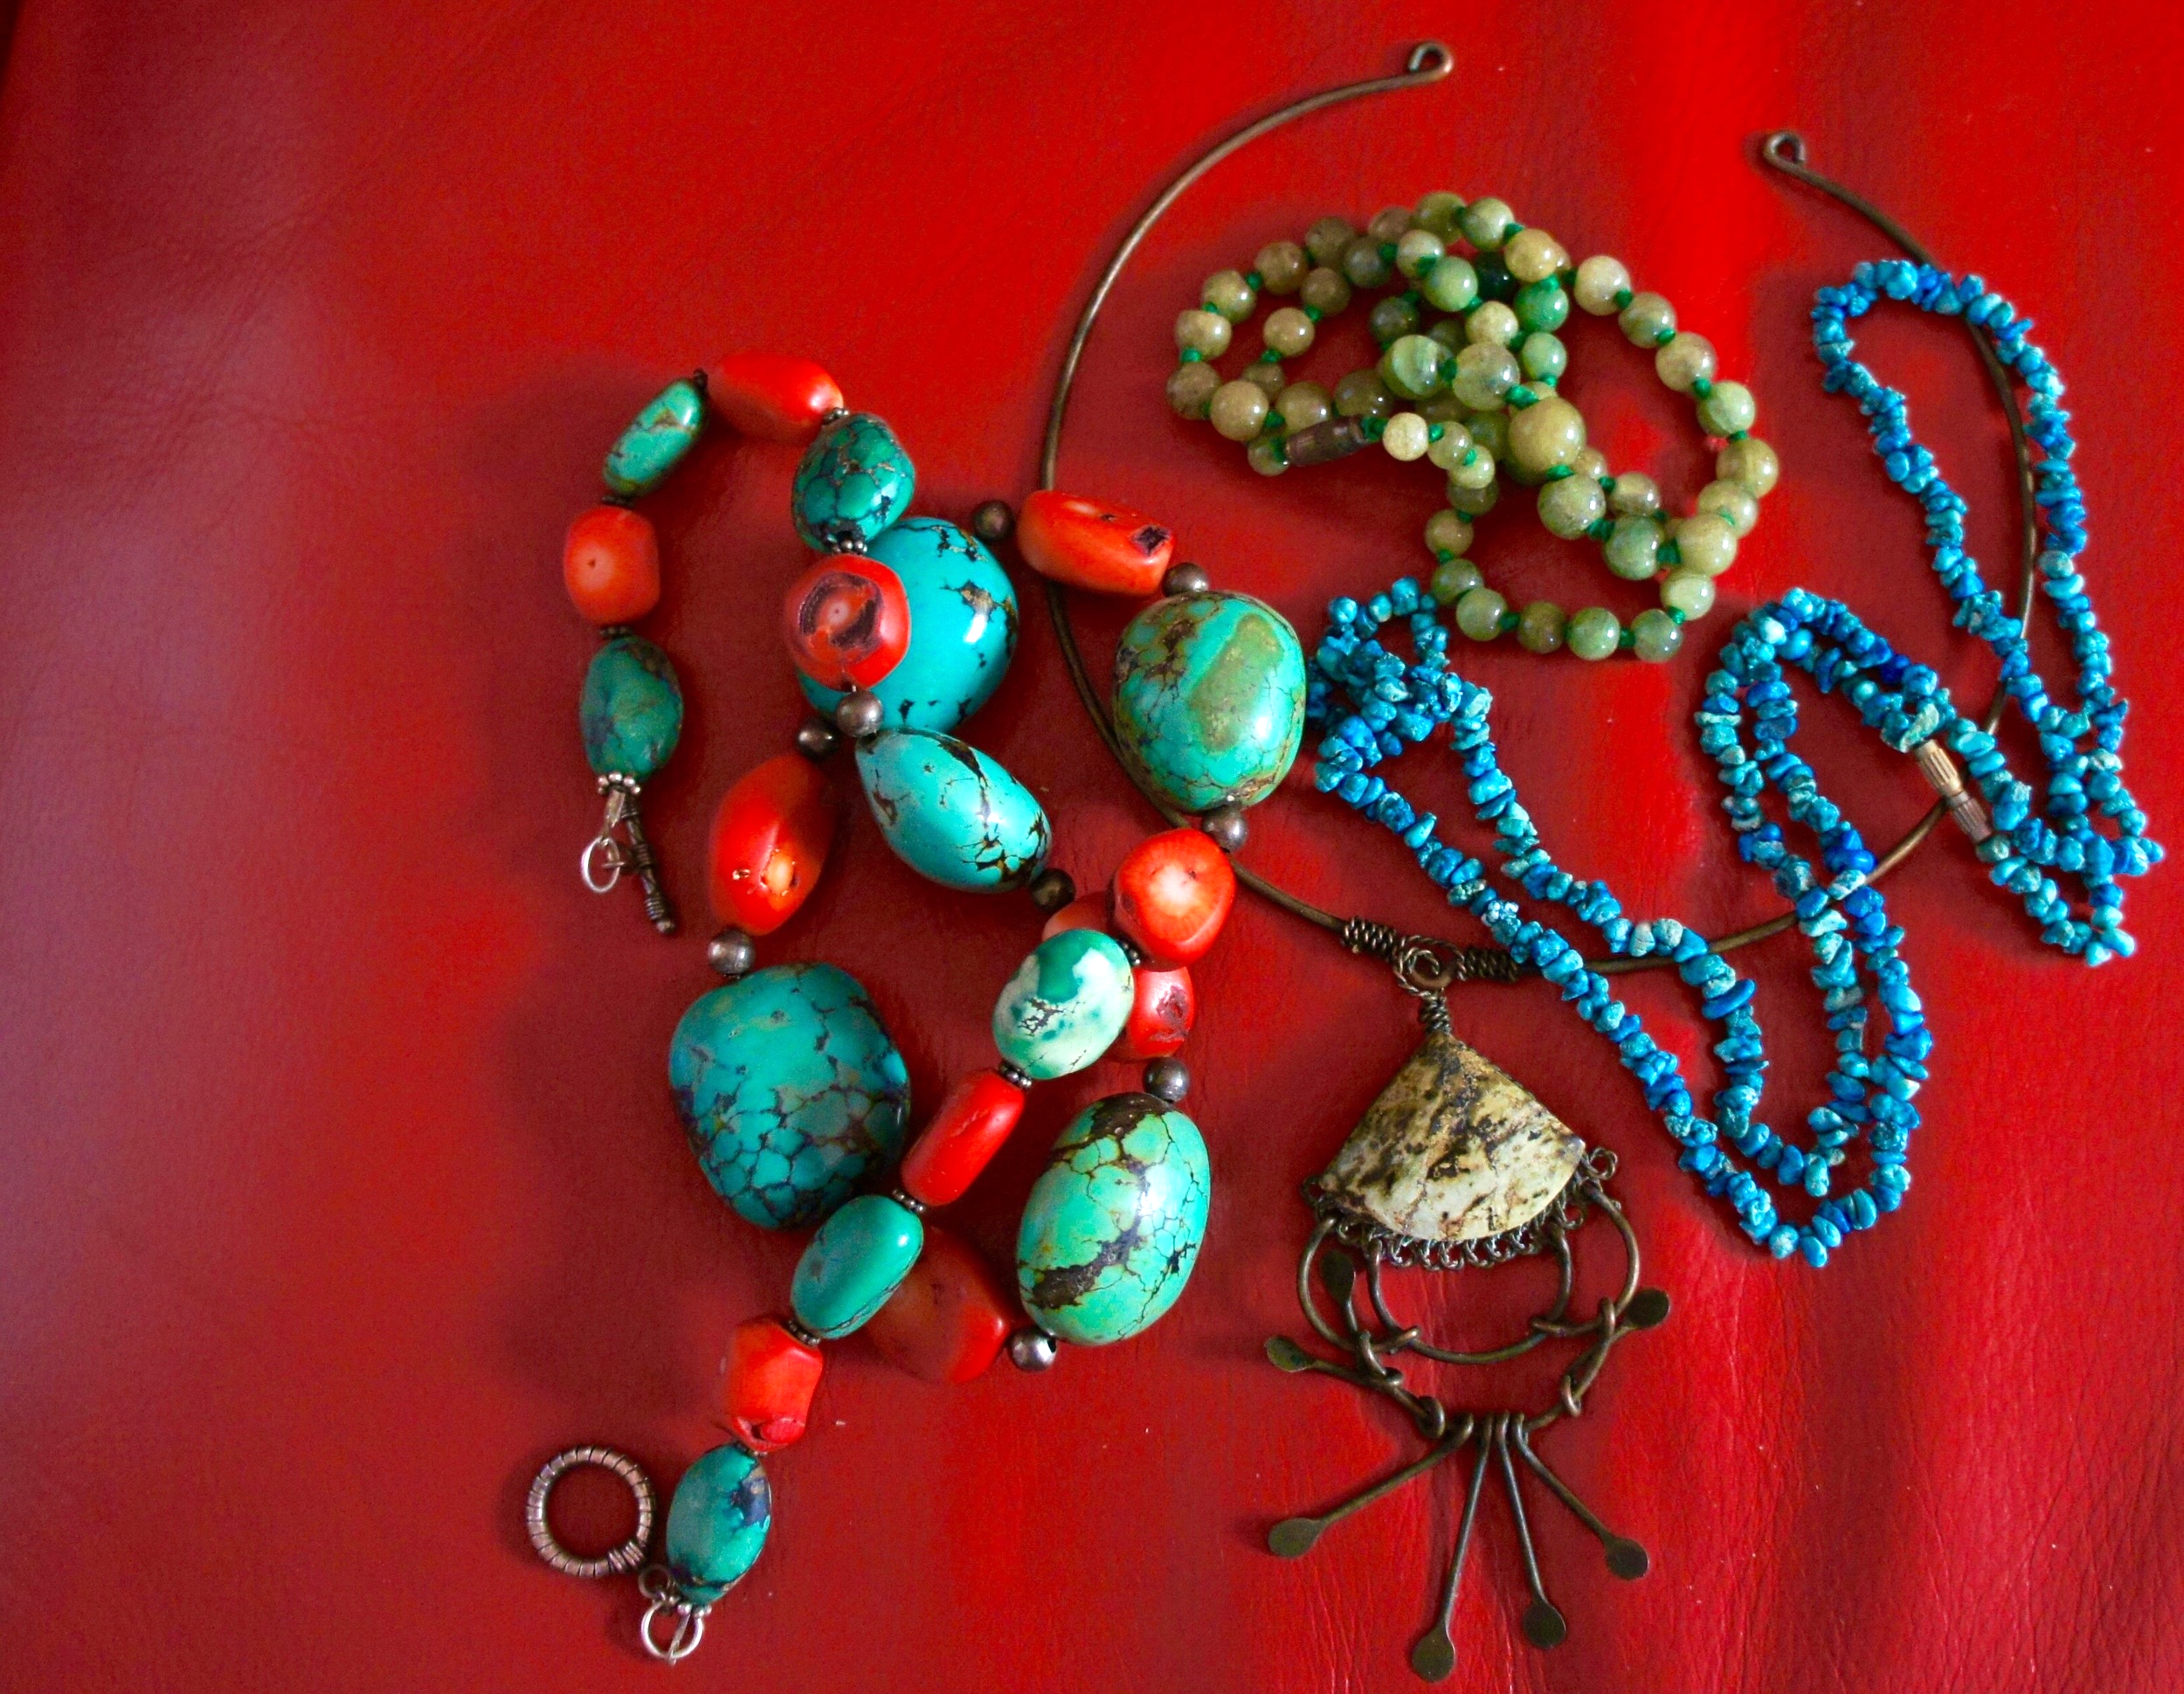 Coral, tibetan and american turquoise, chinese jade and jasper from Cuba. Pic Janelle Trees 2016